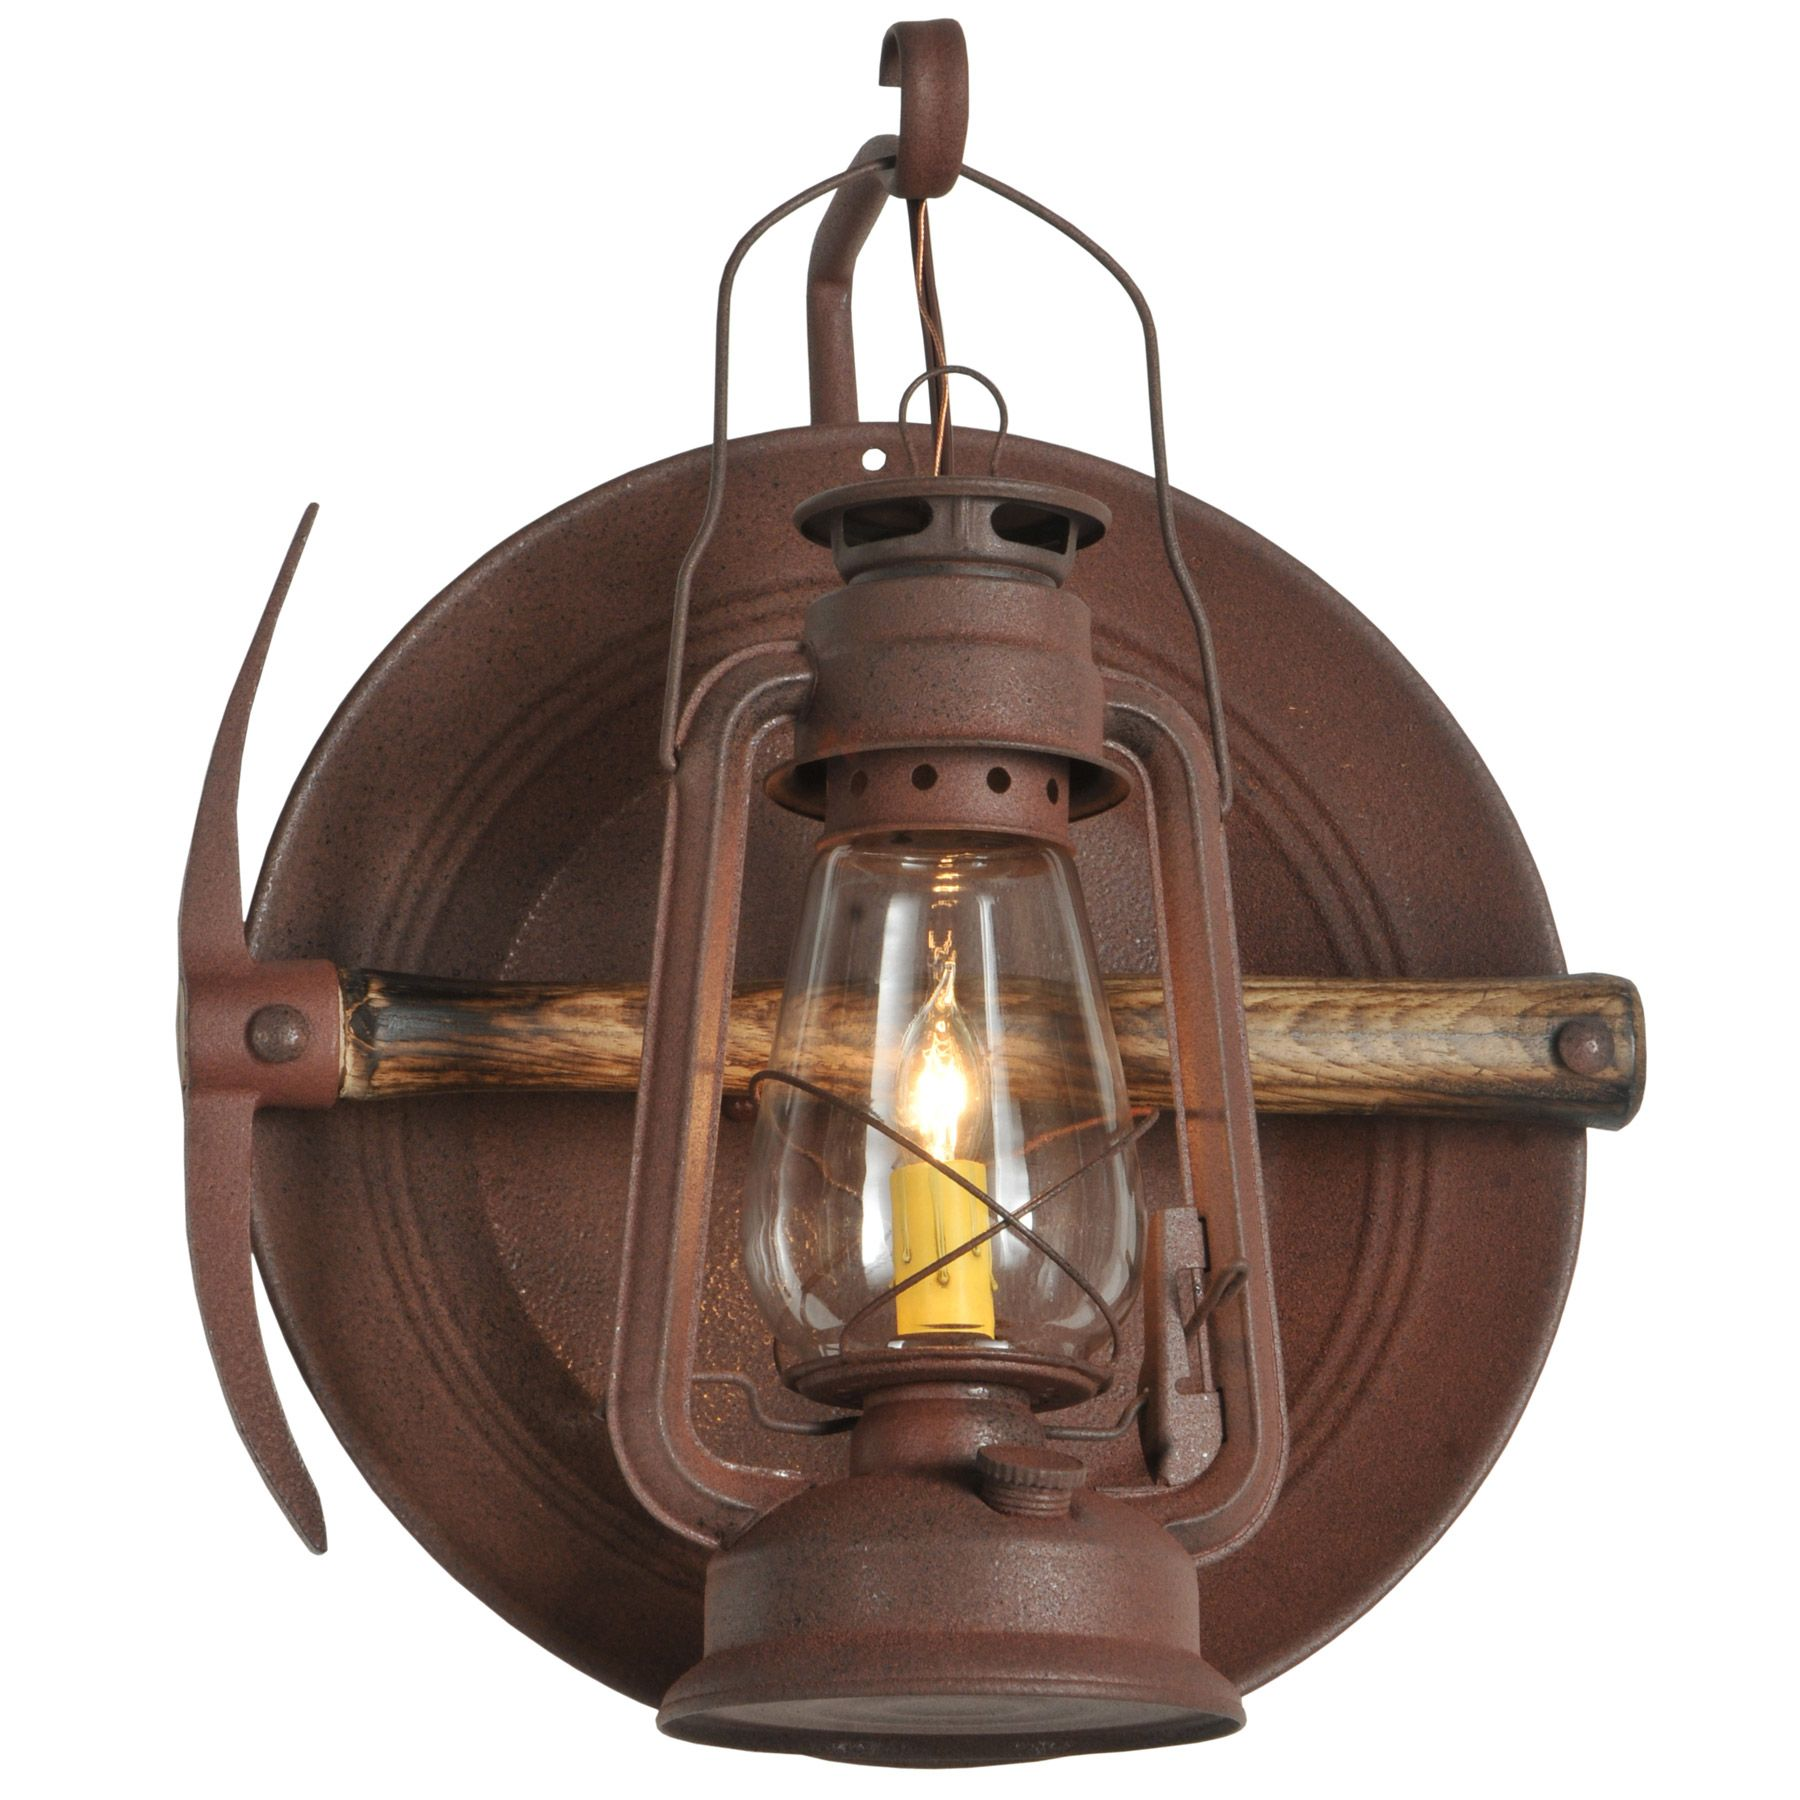 Rustic Outdoor Light Fixtures Rustic Outdoor Lighting Rustic Wall Sconces Outdoor Light Fixtures